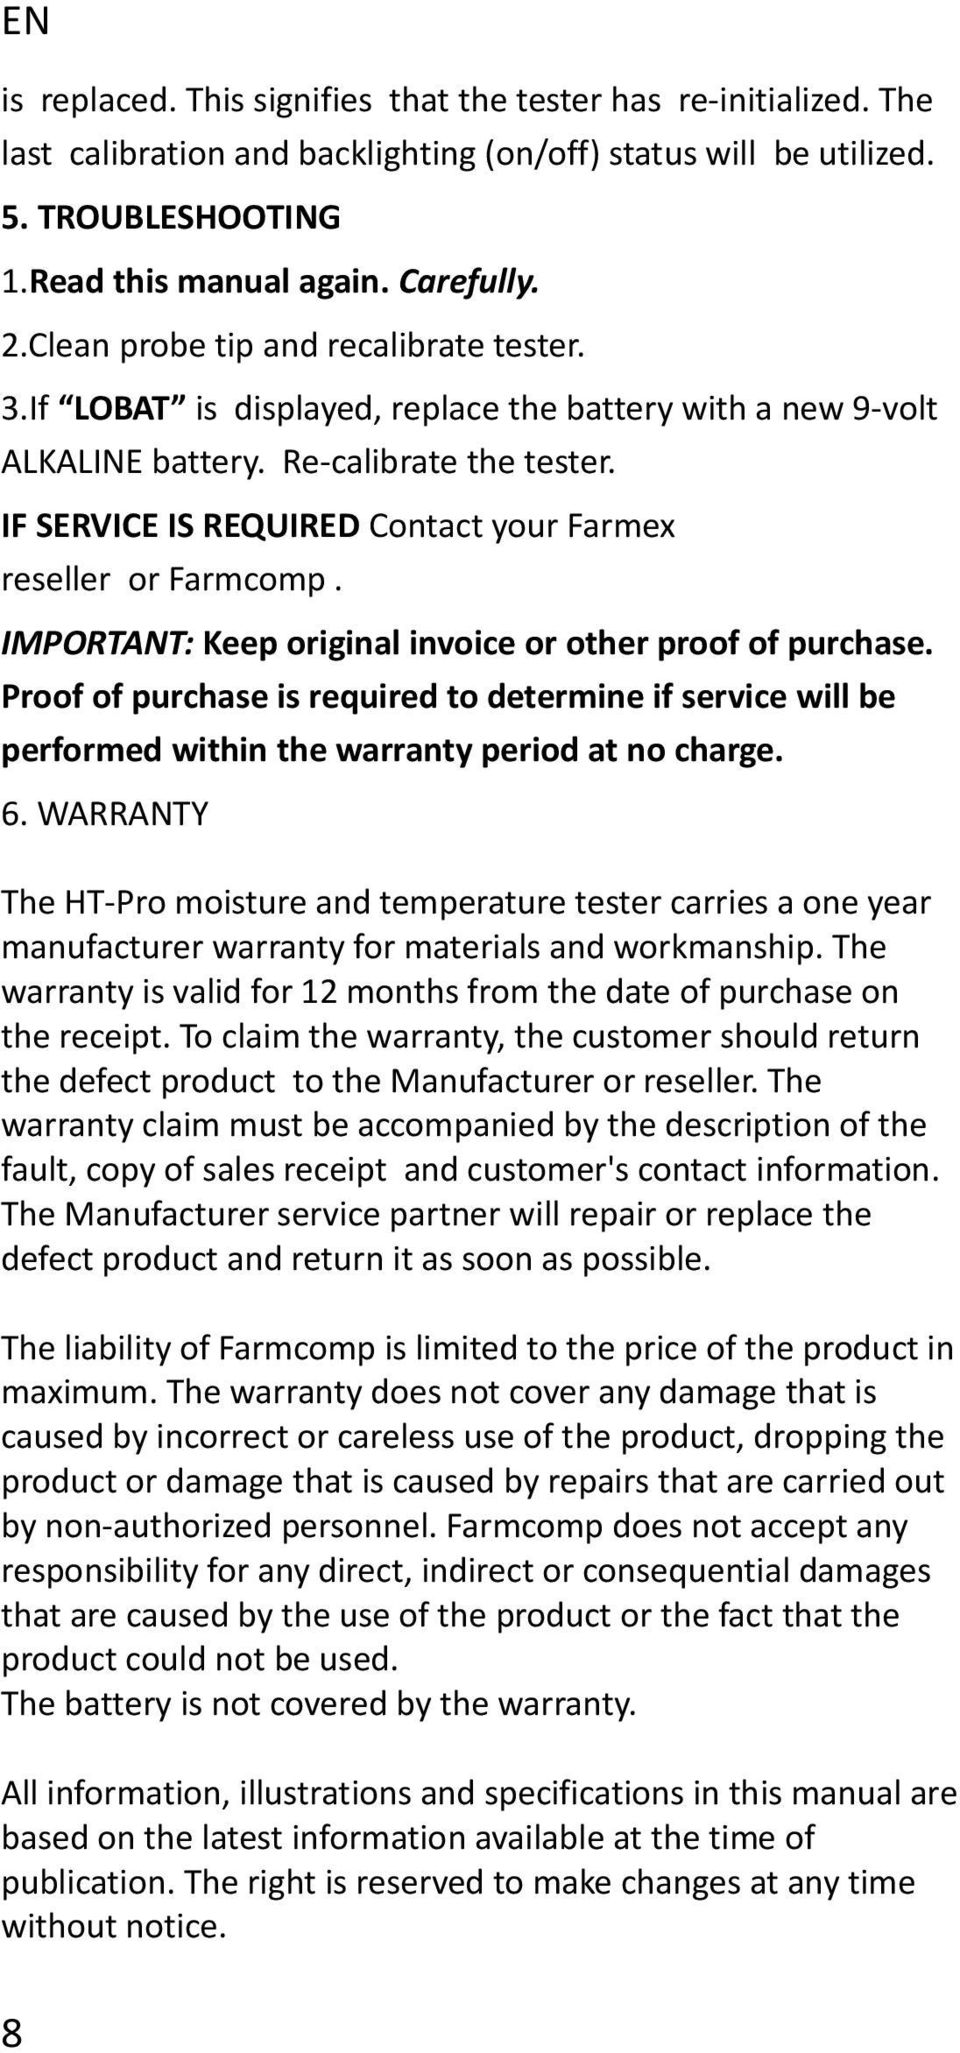 IF SERVICE IS REQUIRED Contact your Farmex reseller or Farmcomp. IMPORTANT:  Keep original invoice